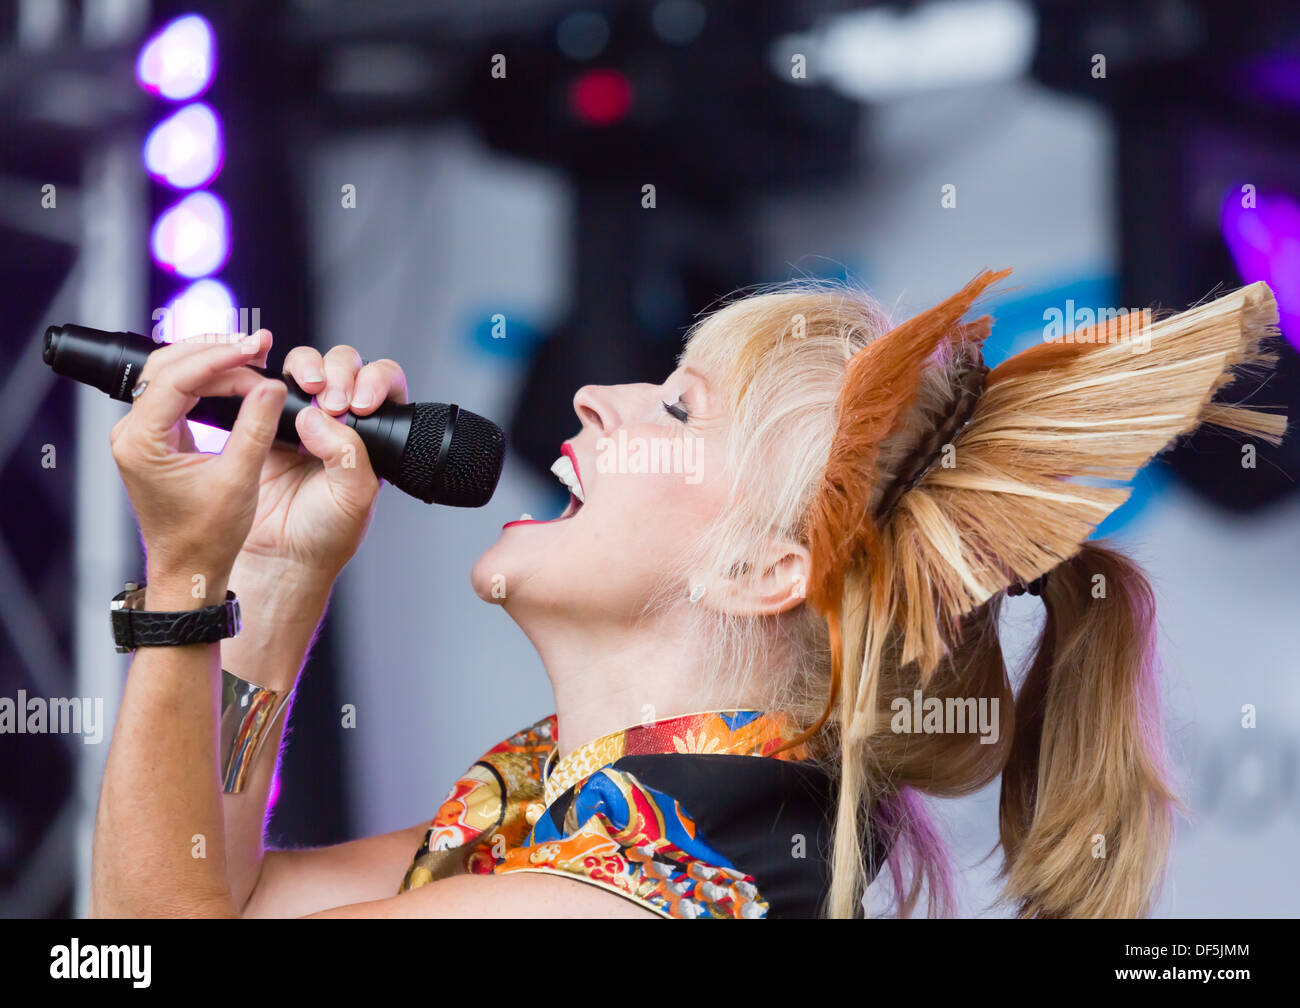 Toyah Wilcox singing at the Newcastle Pride event, July 2013 in Newcastle on Tyne. Stock Photo